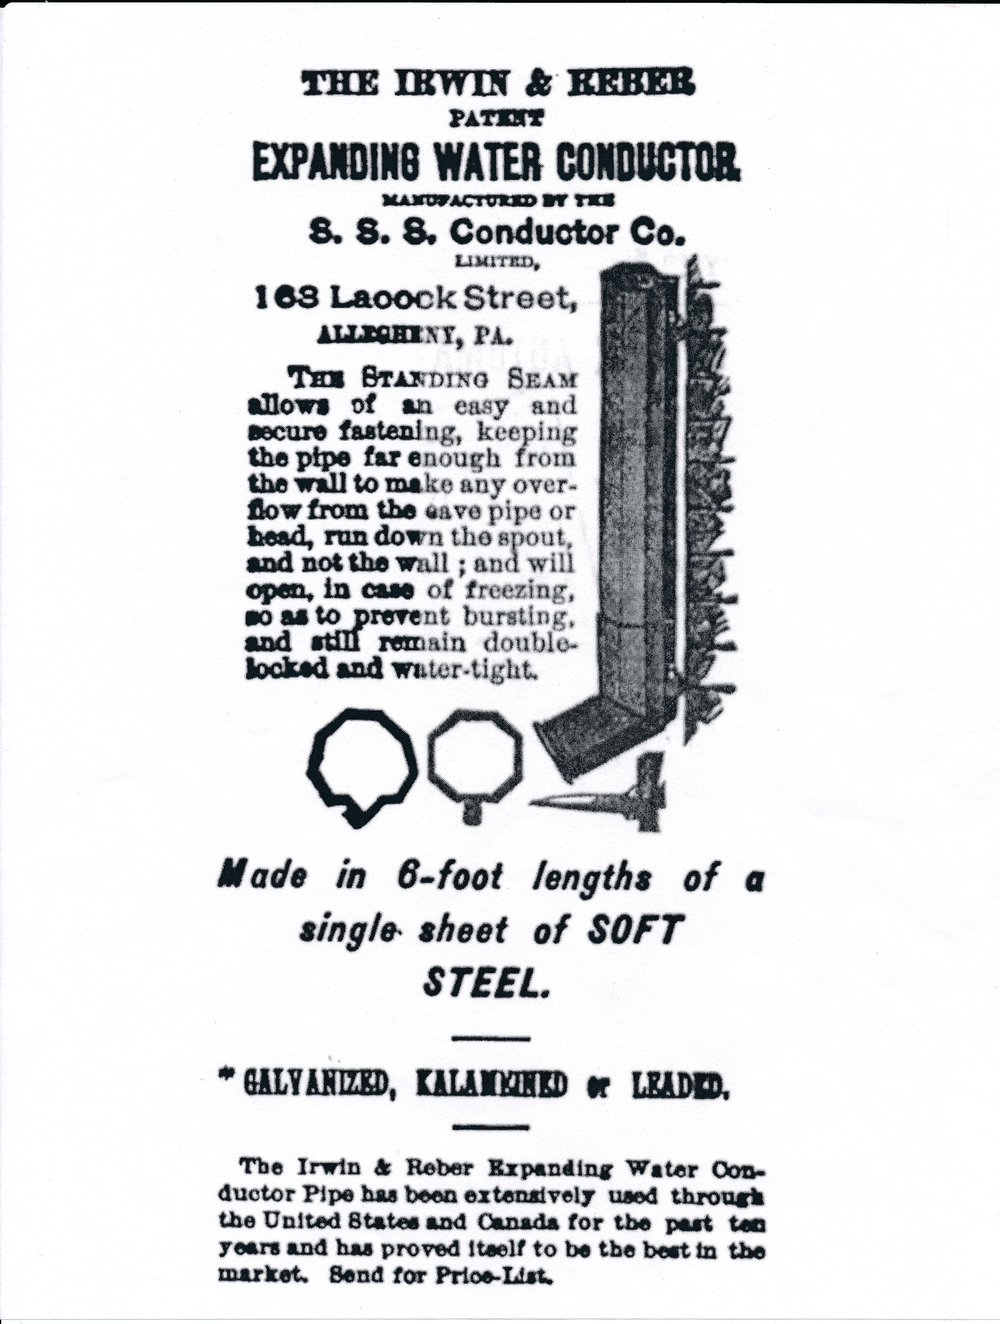 Ad from PHLF Vertical File